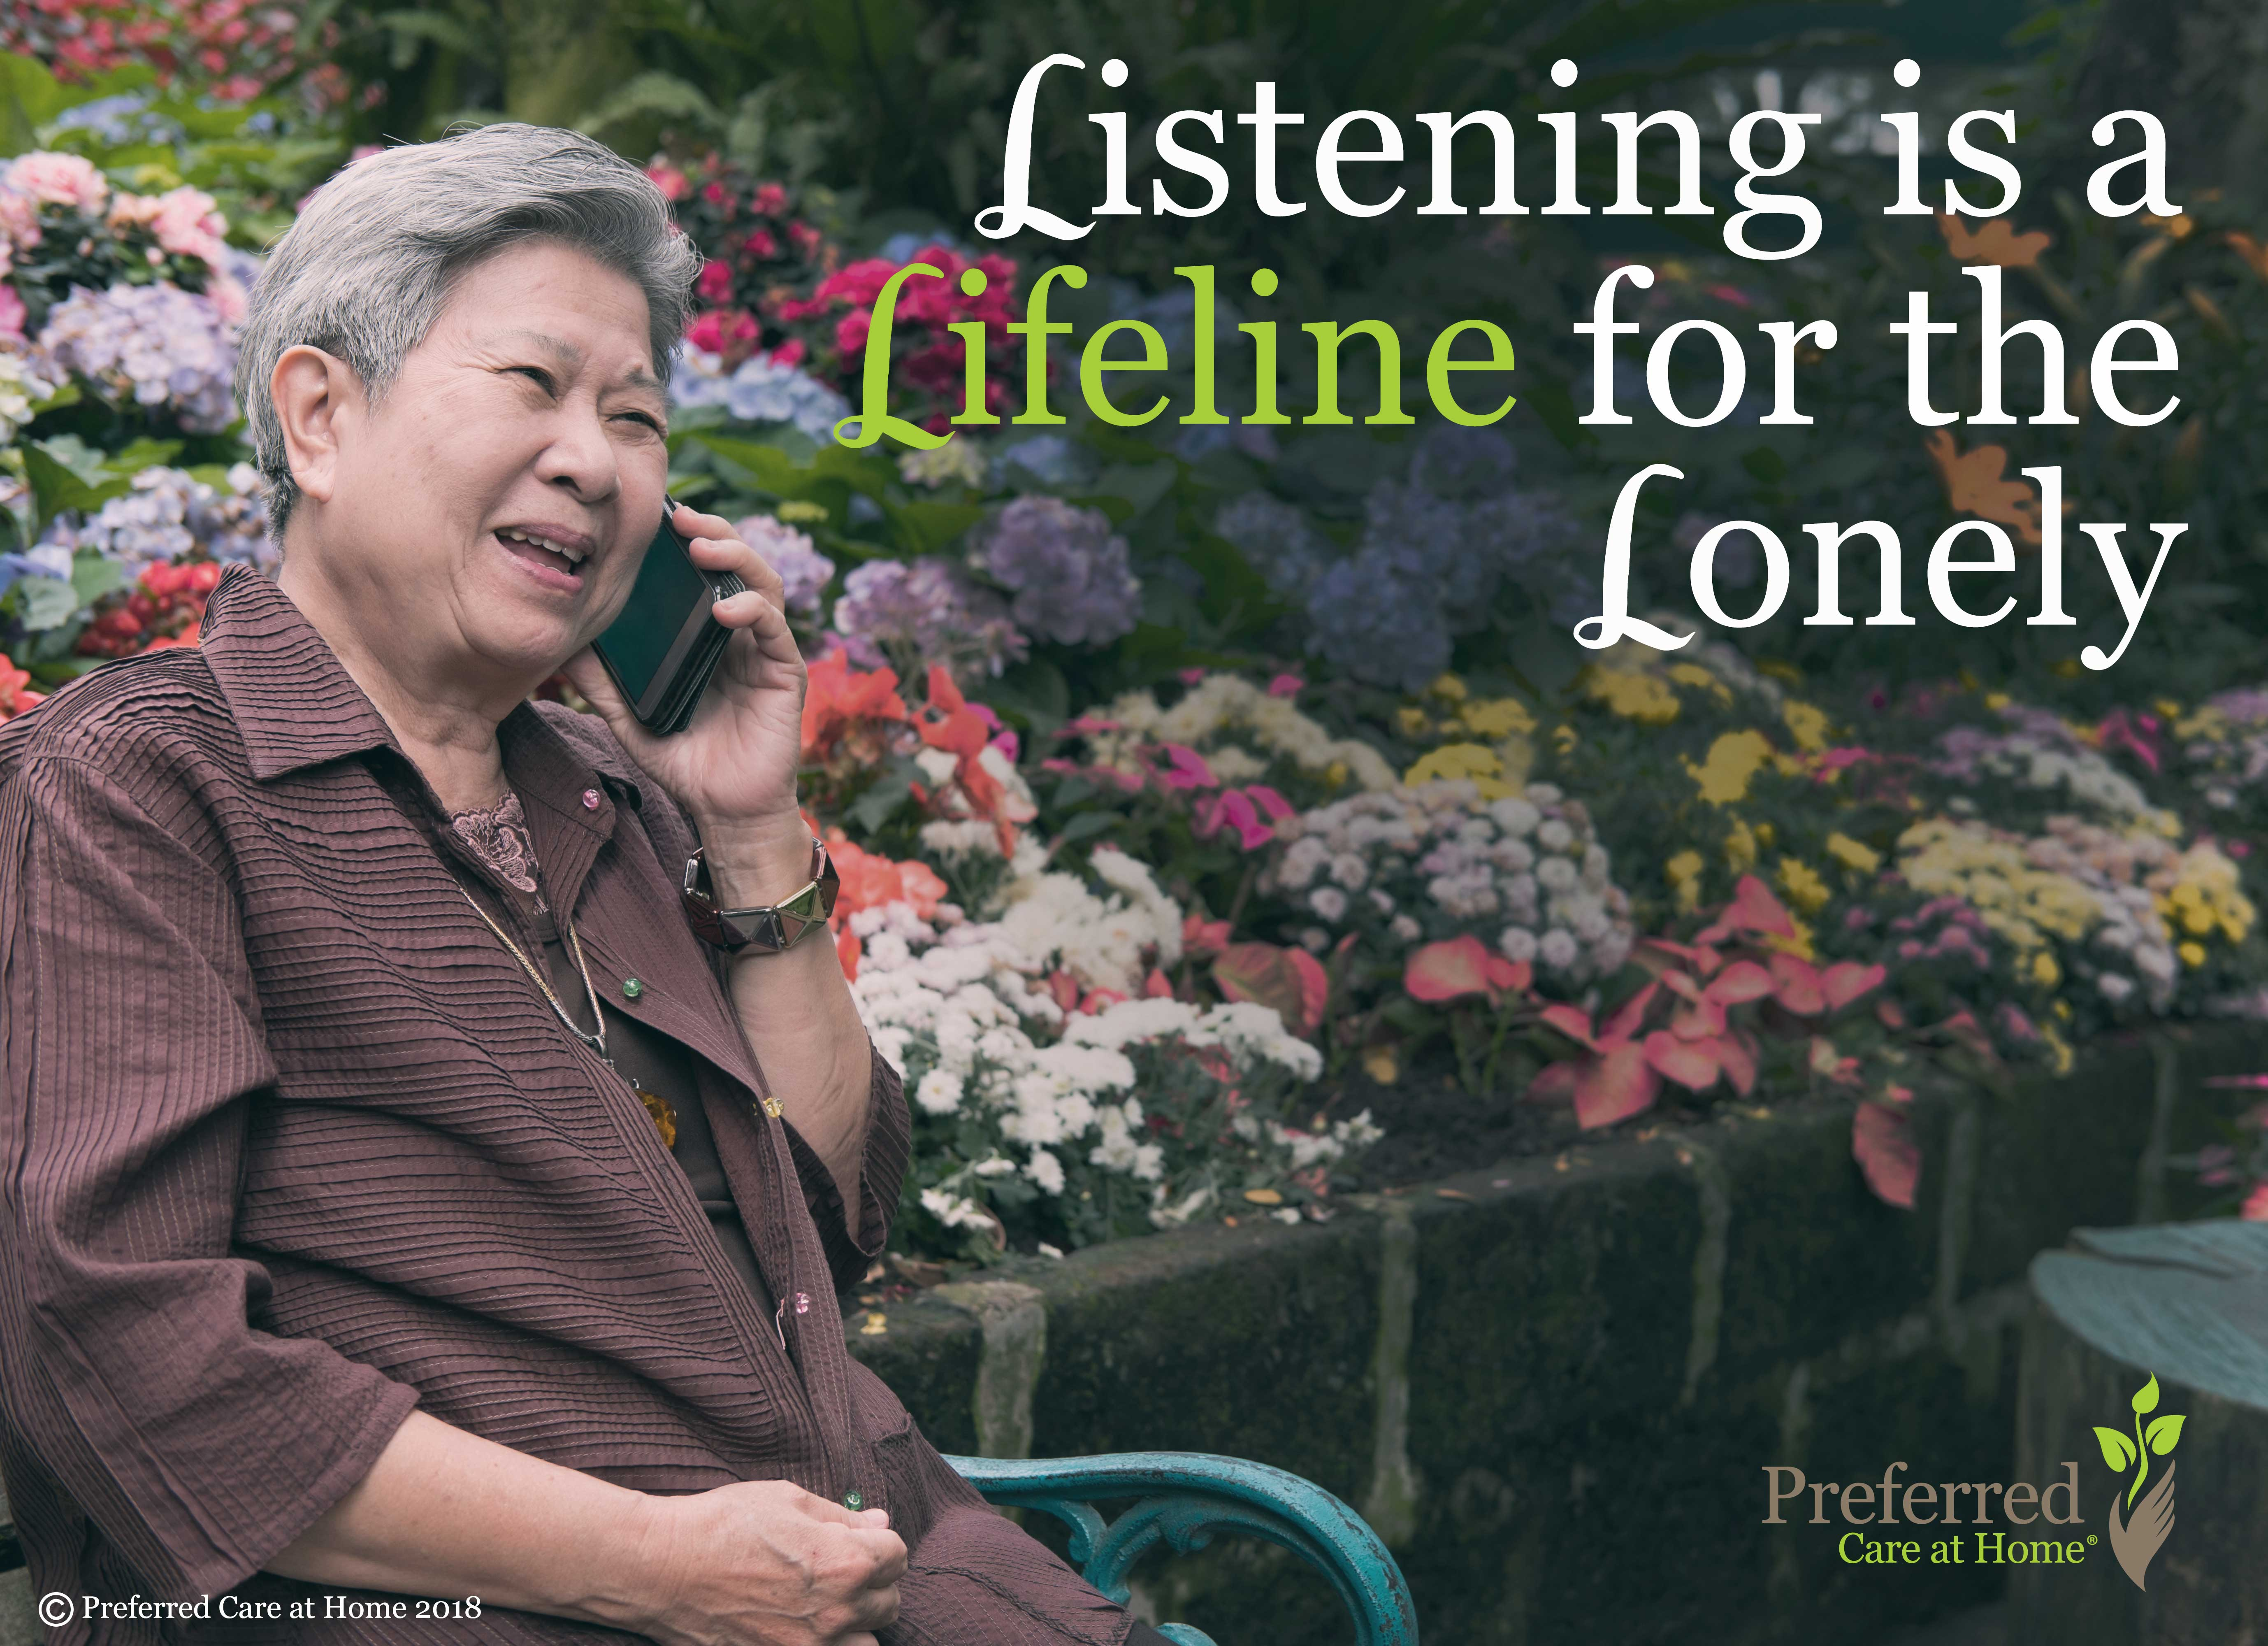 Listening is a Lifeline for the Lonely